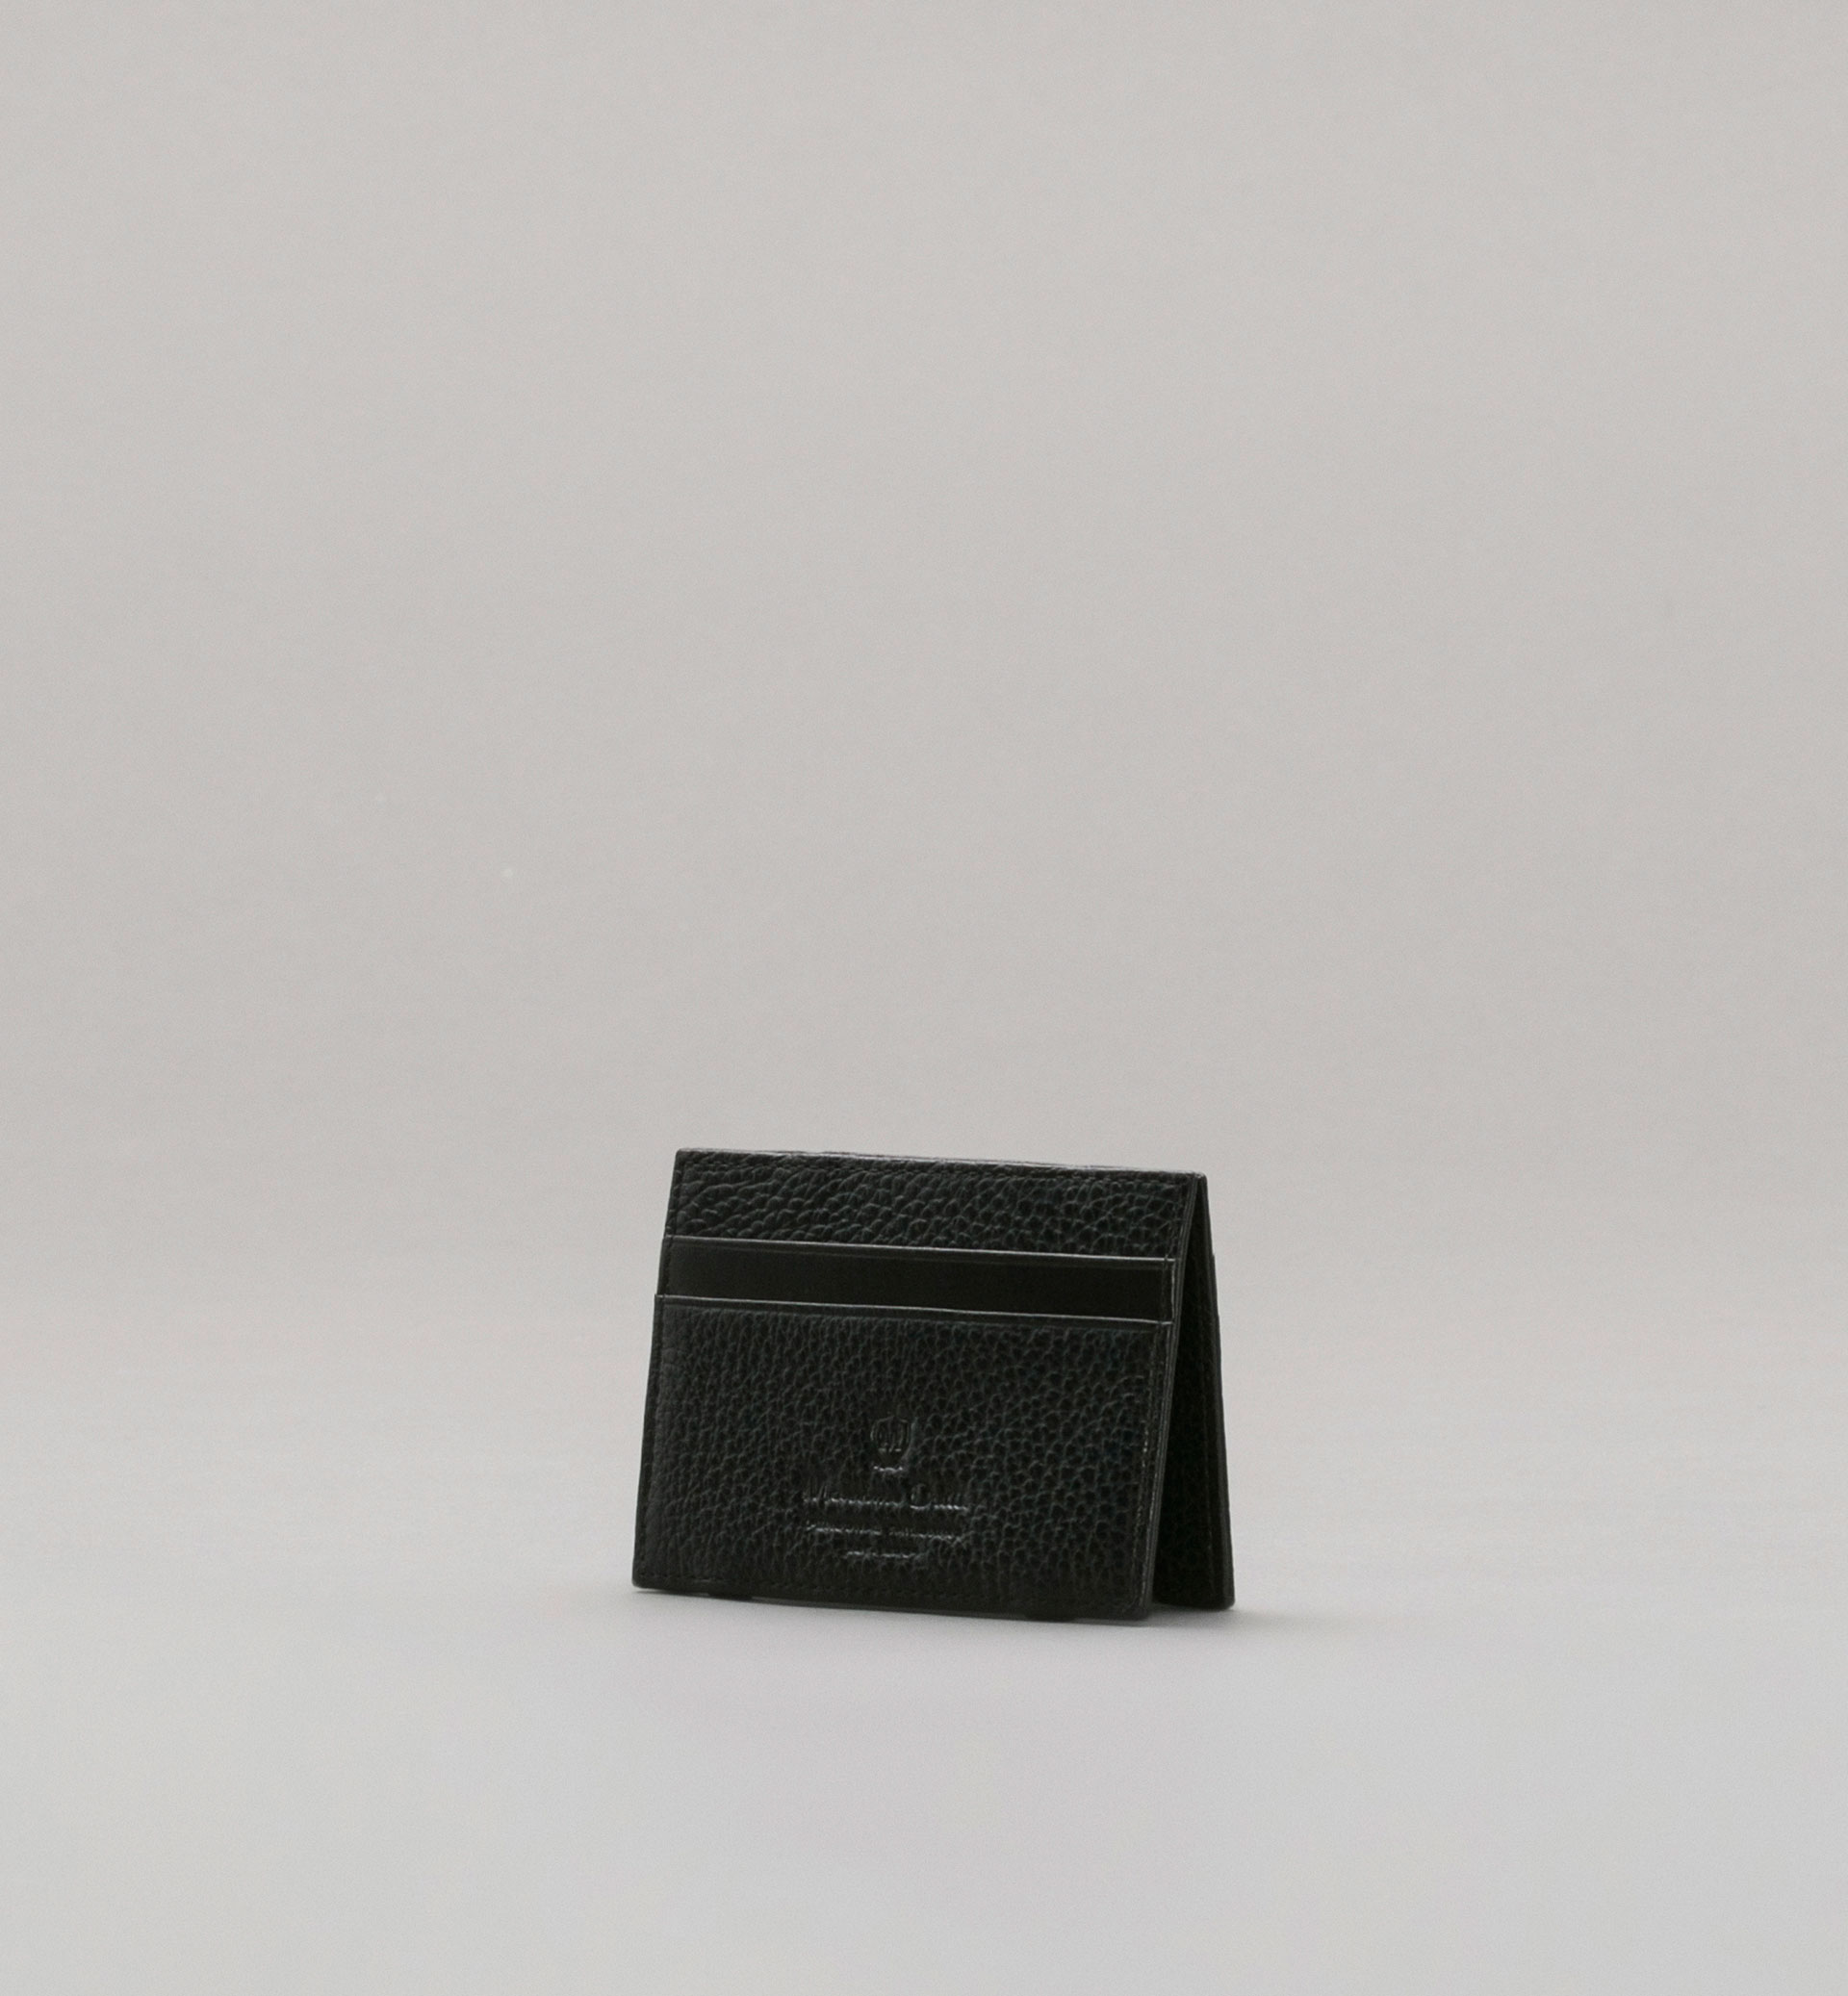 PERSONAL TAILORING LEATHER MAGIC WALLET CARD HOLDER